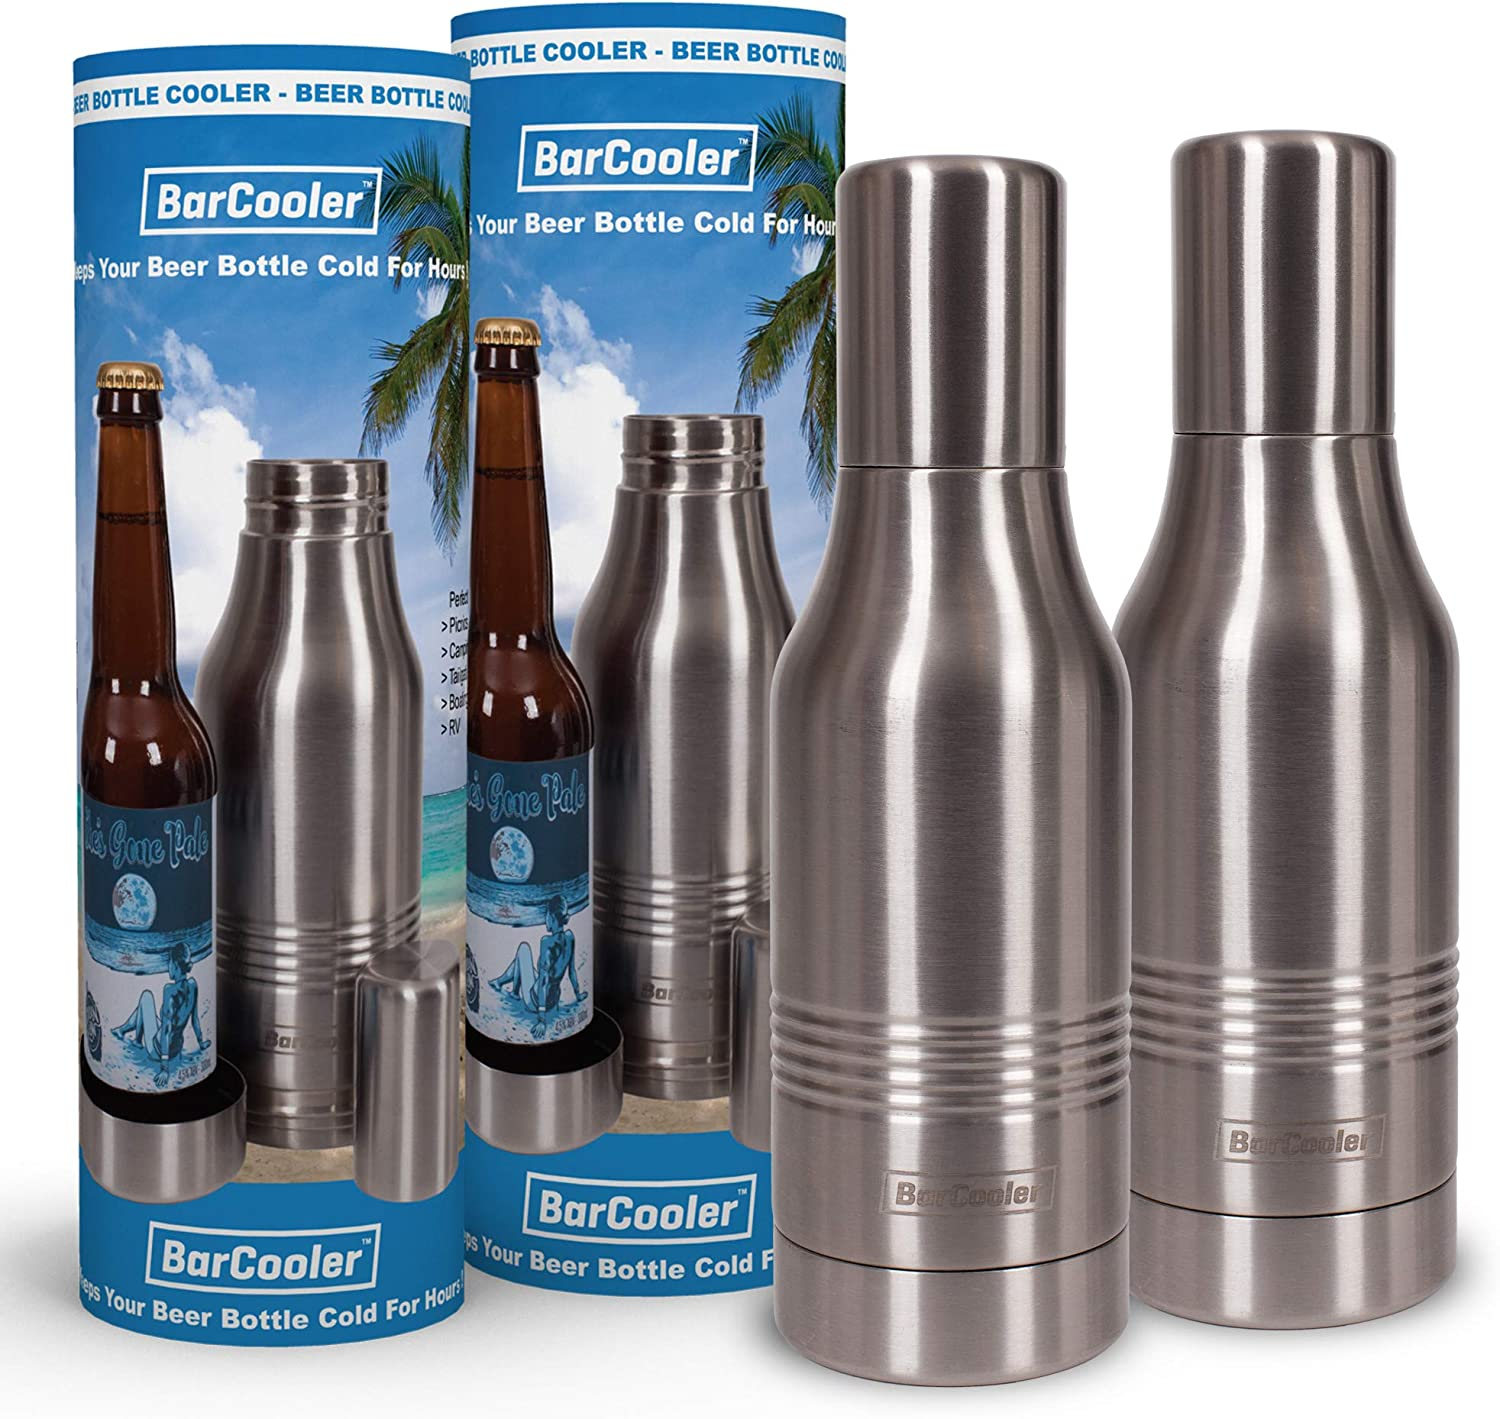 Beer Bottle Insulator - Double Wall Stainless Steel Beer Bottle Cooler. Great Gift. Includes bonus E-Book + Gift Box. Twin Pack.